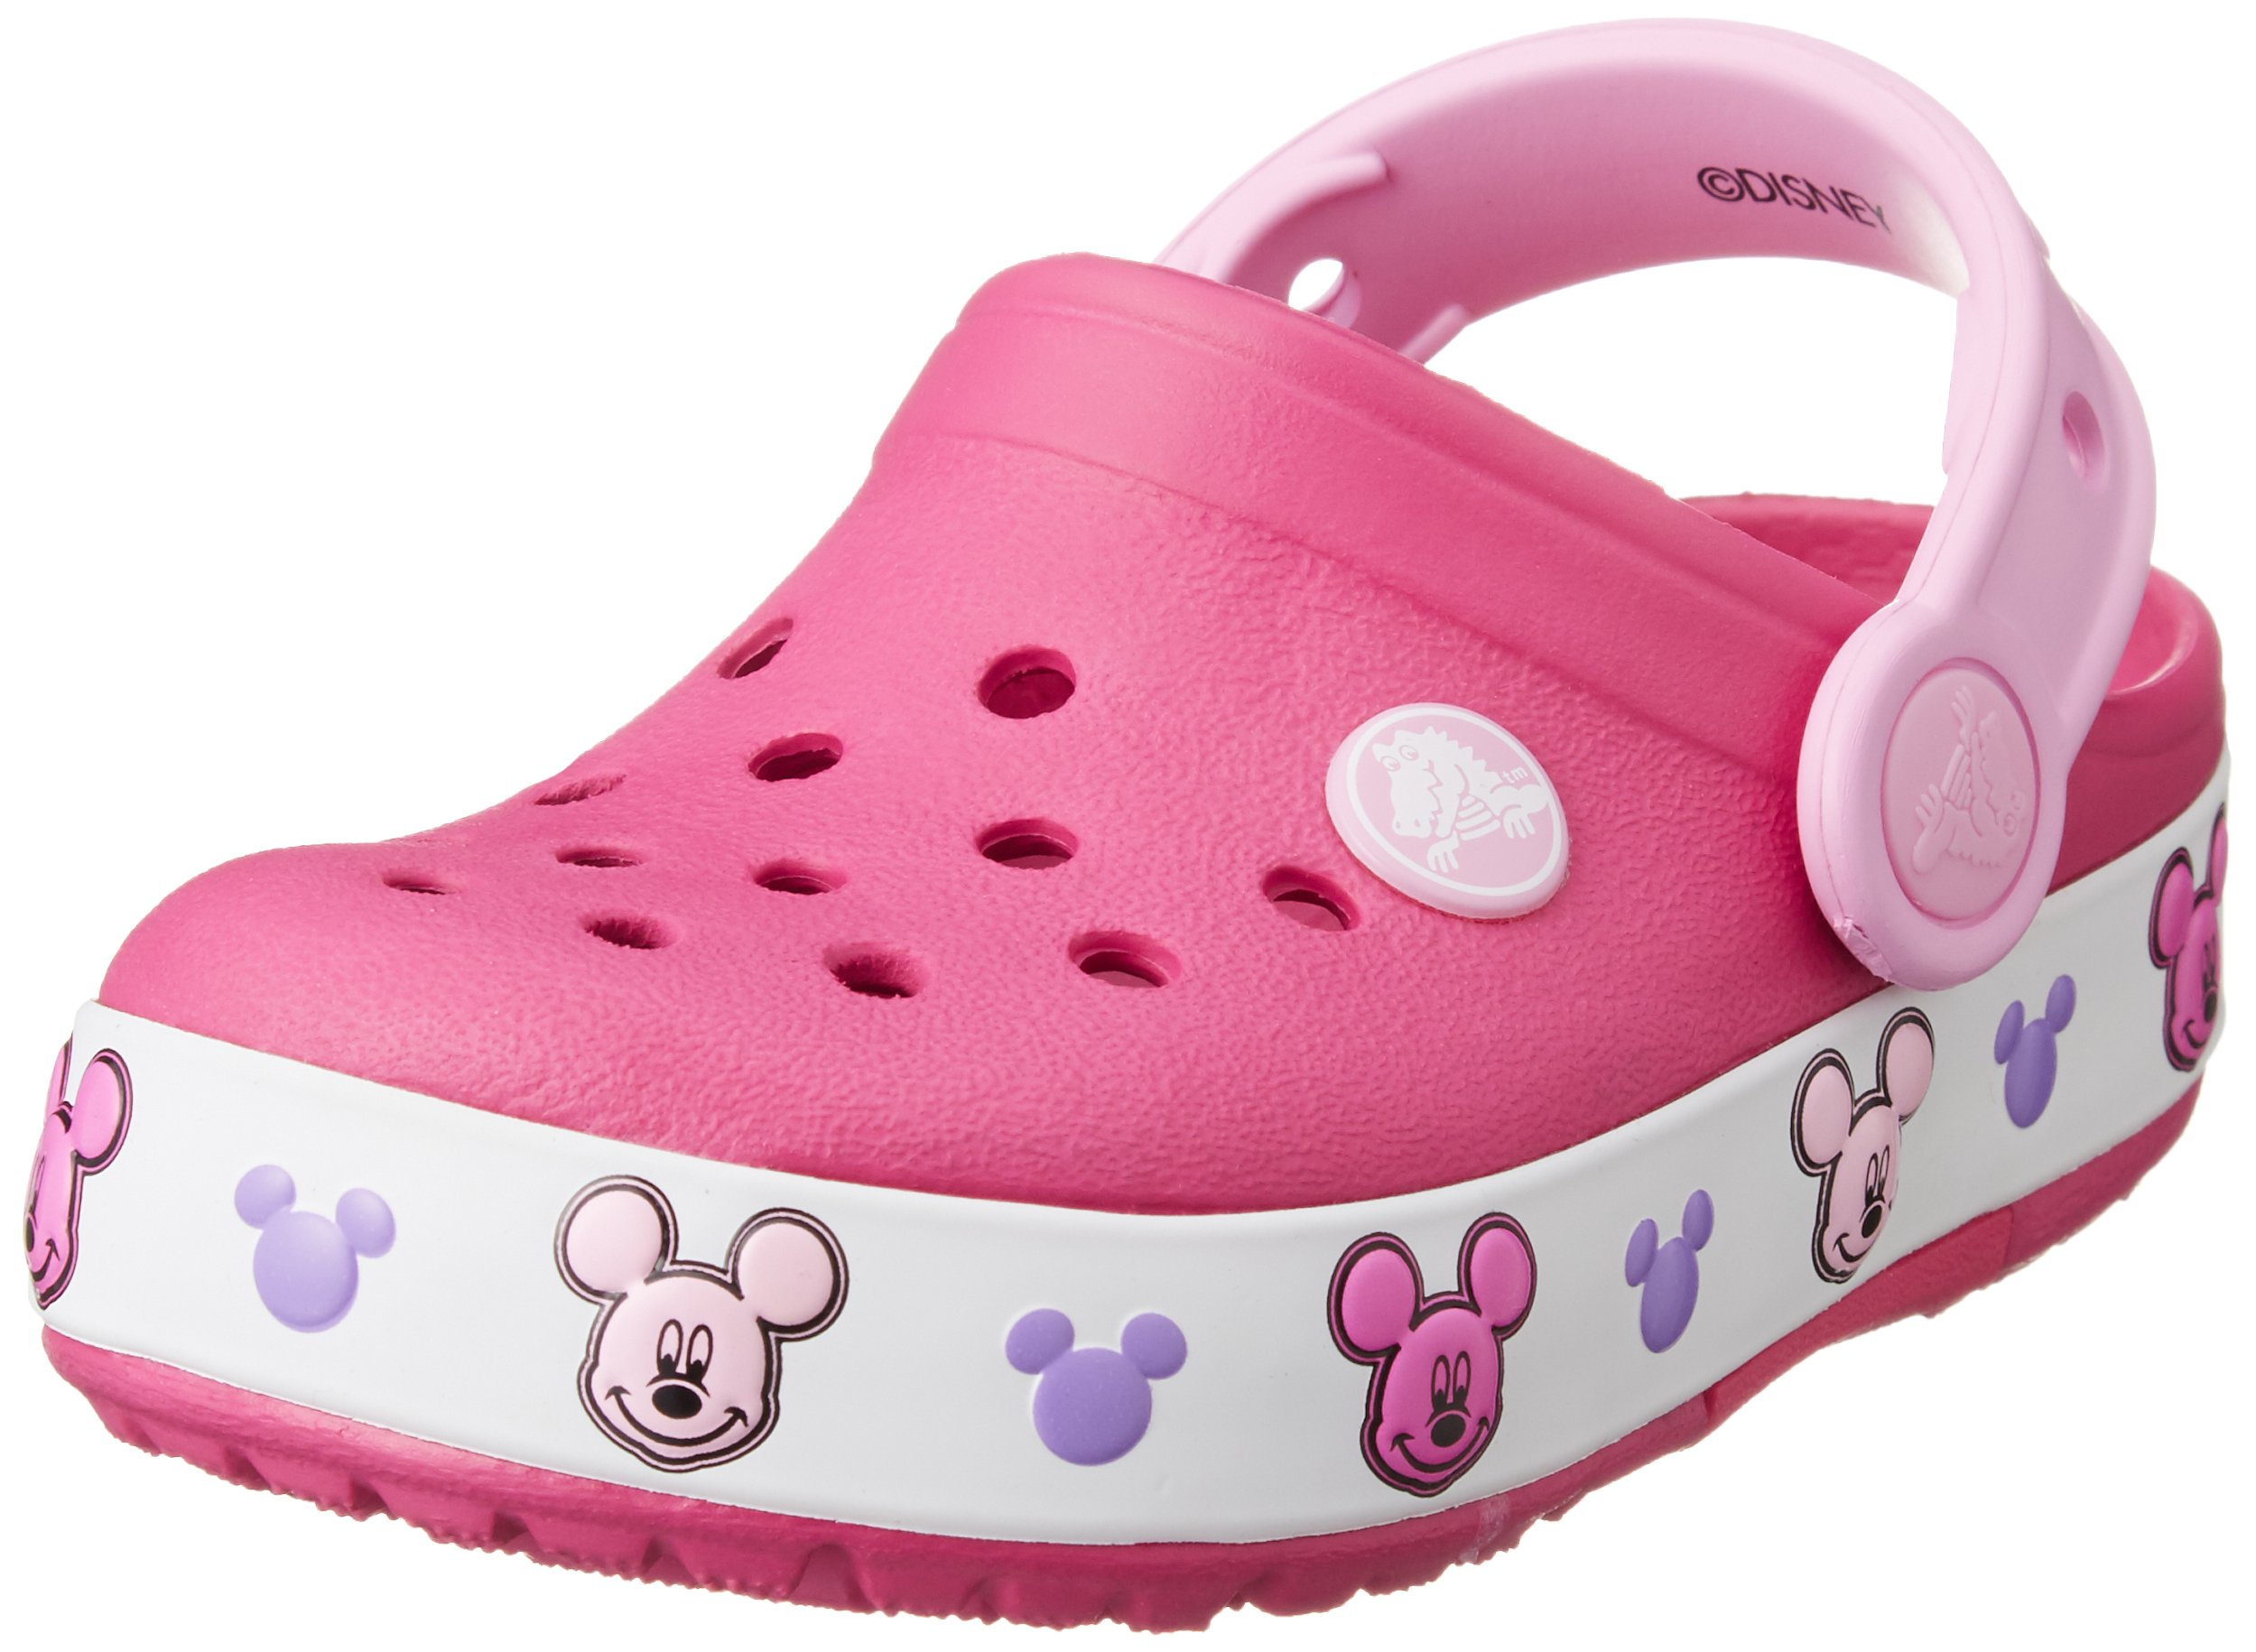 Crocs Kids' Light-Up Mickey Mouse Clog, Candy Pink, 2 M US Little Kid